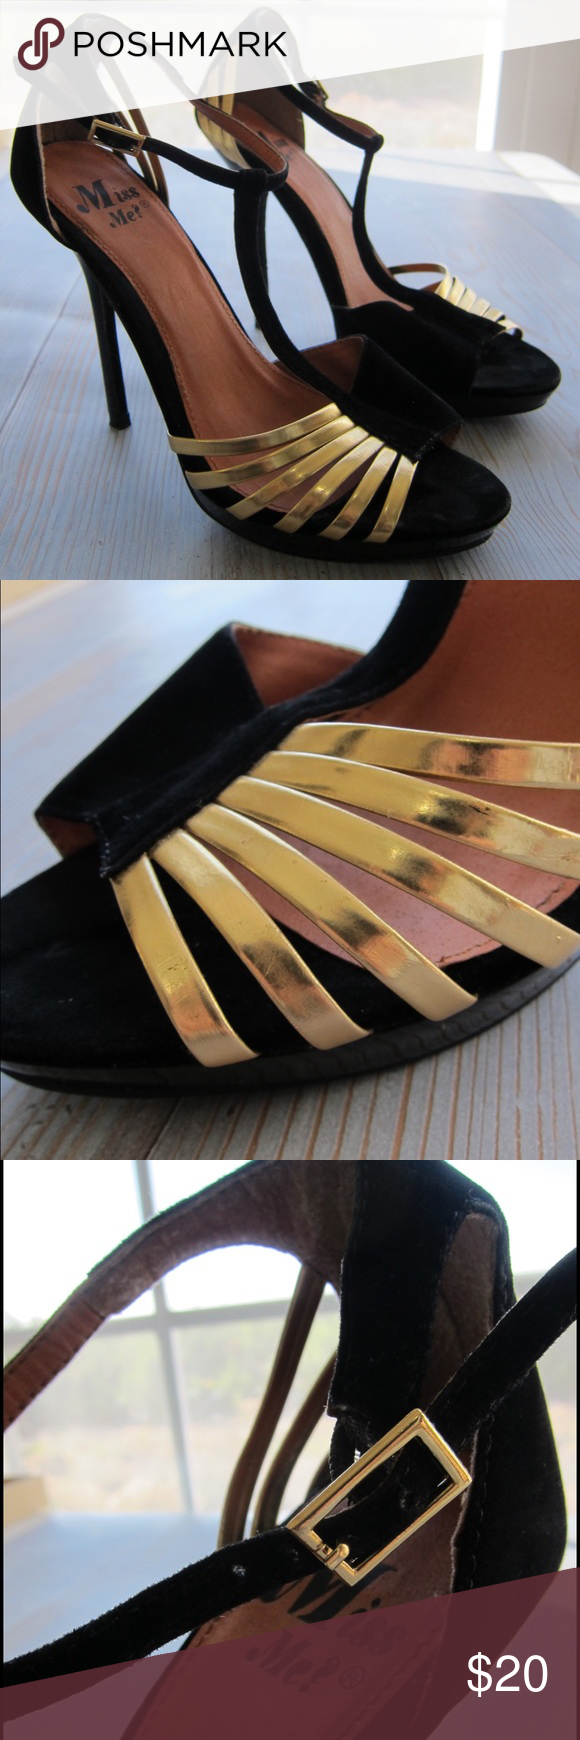 Miss Me black and gold suede pumps size 7 Sexy pumps with gold straps. Ankle strap closure. Gently worn. Size 7 Miss Me Shoes Heels